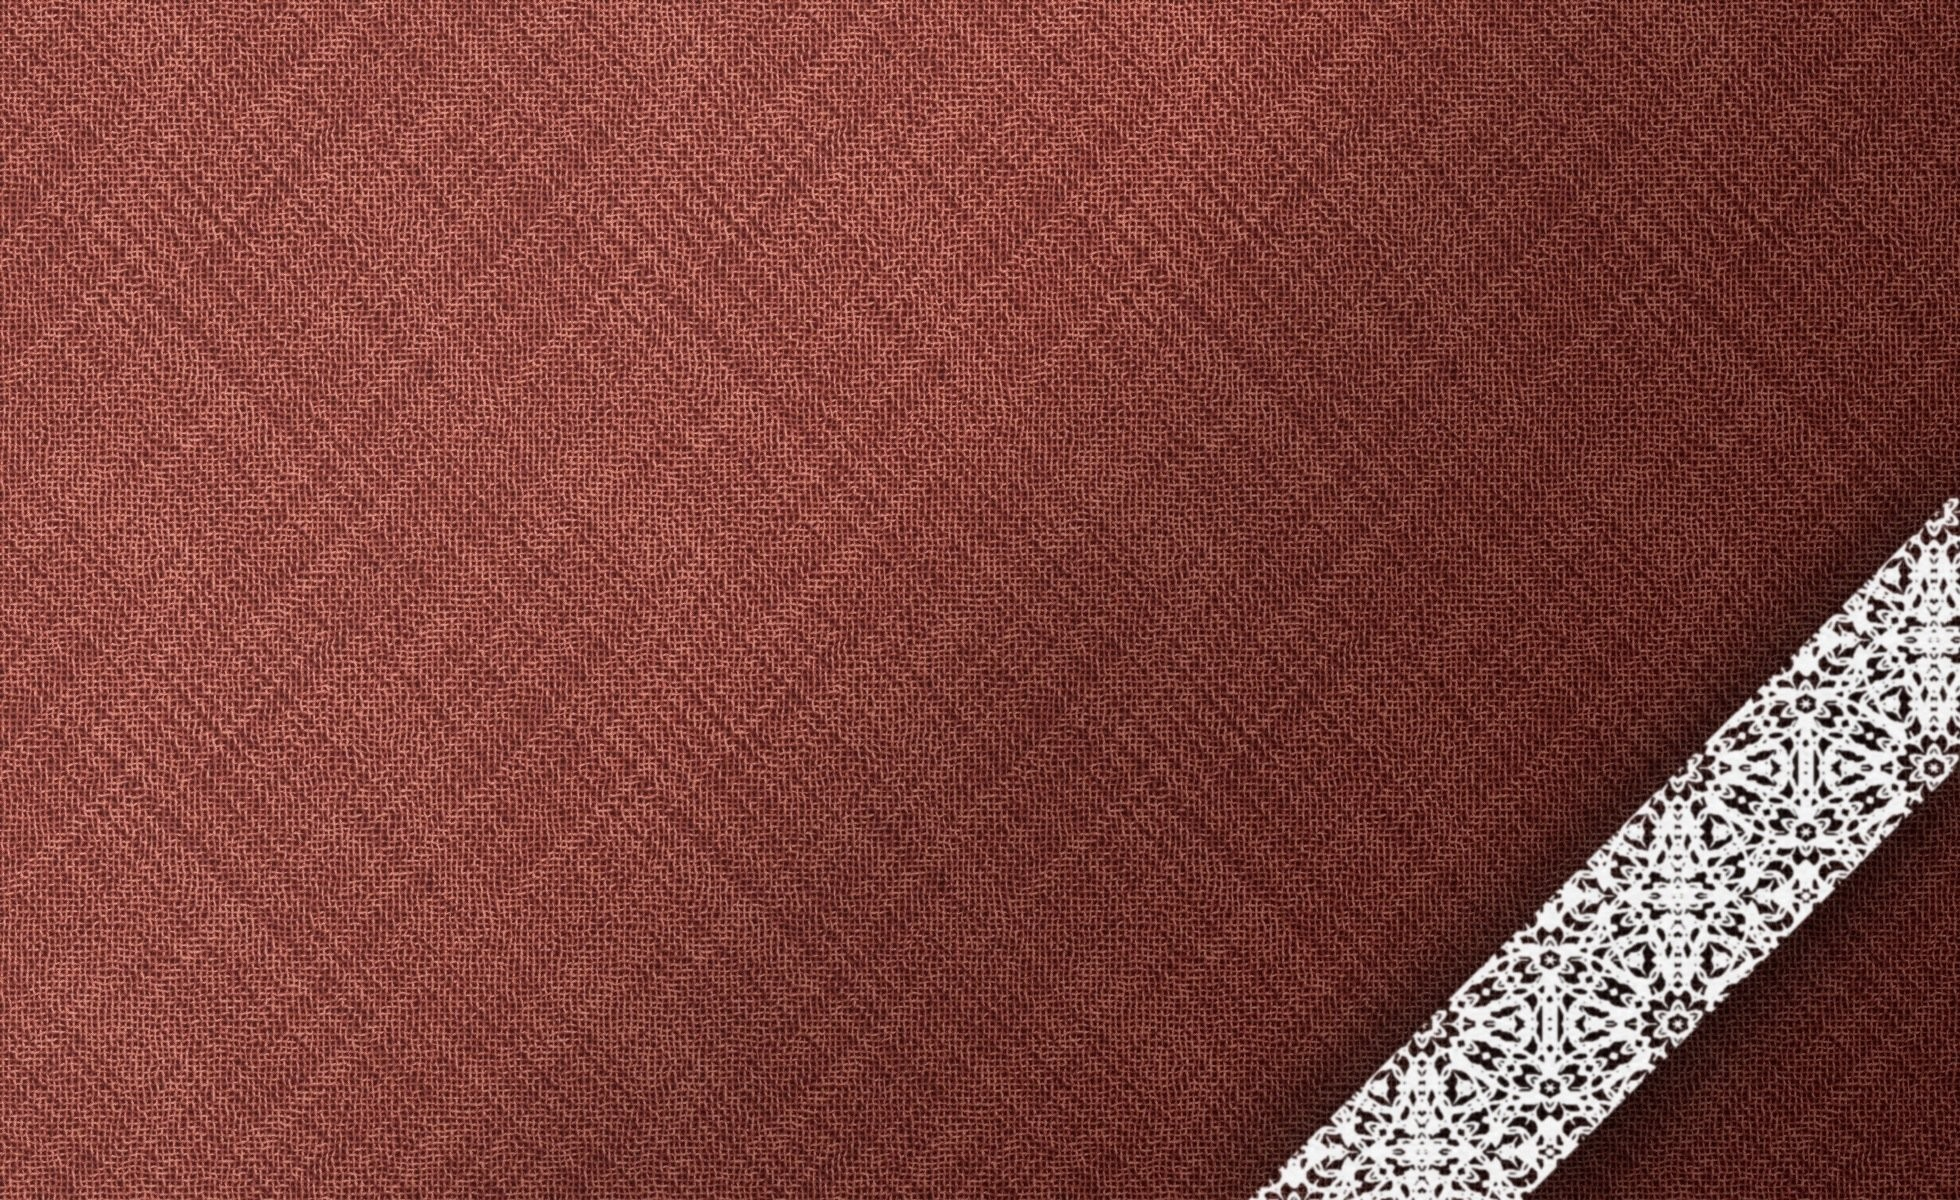 Res: 1960x1200, textures background cloth burgundy brown white lace